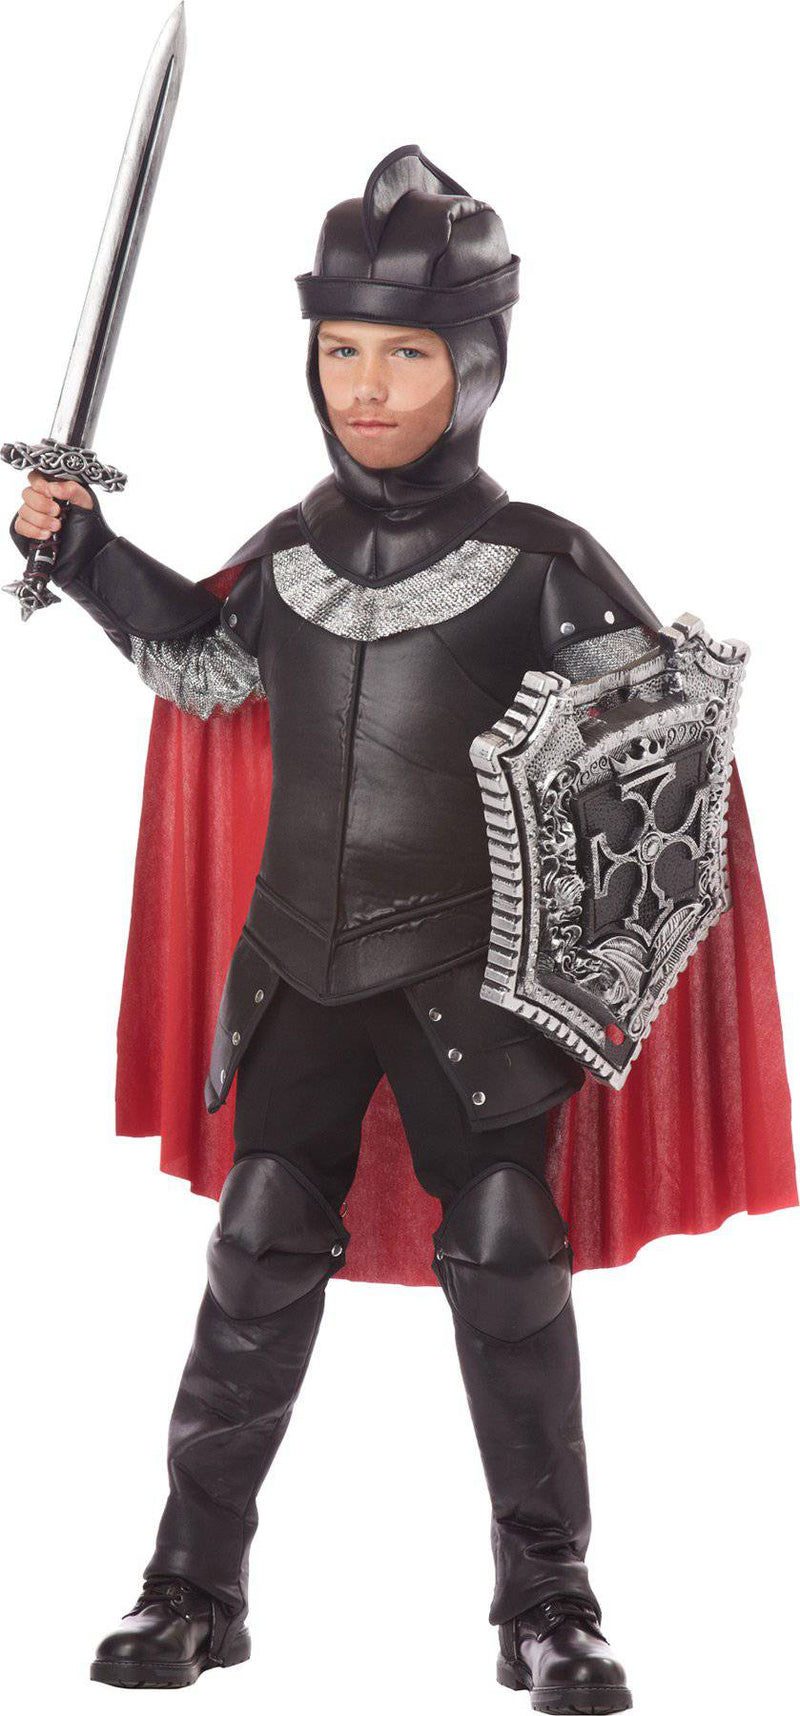 California Costumes Boys' The Black Knight Warrior Party Costume - Costume Arena